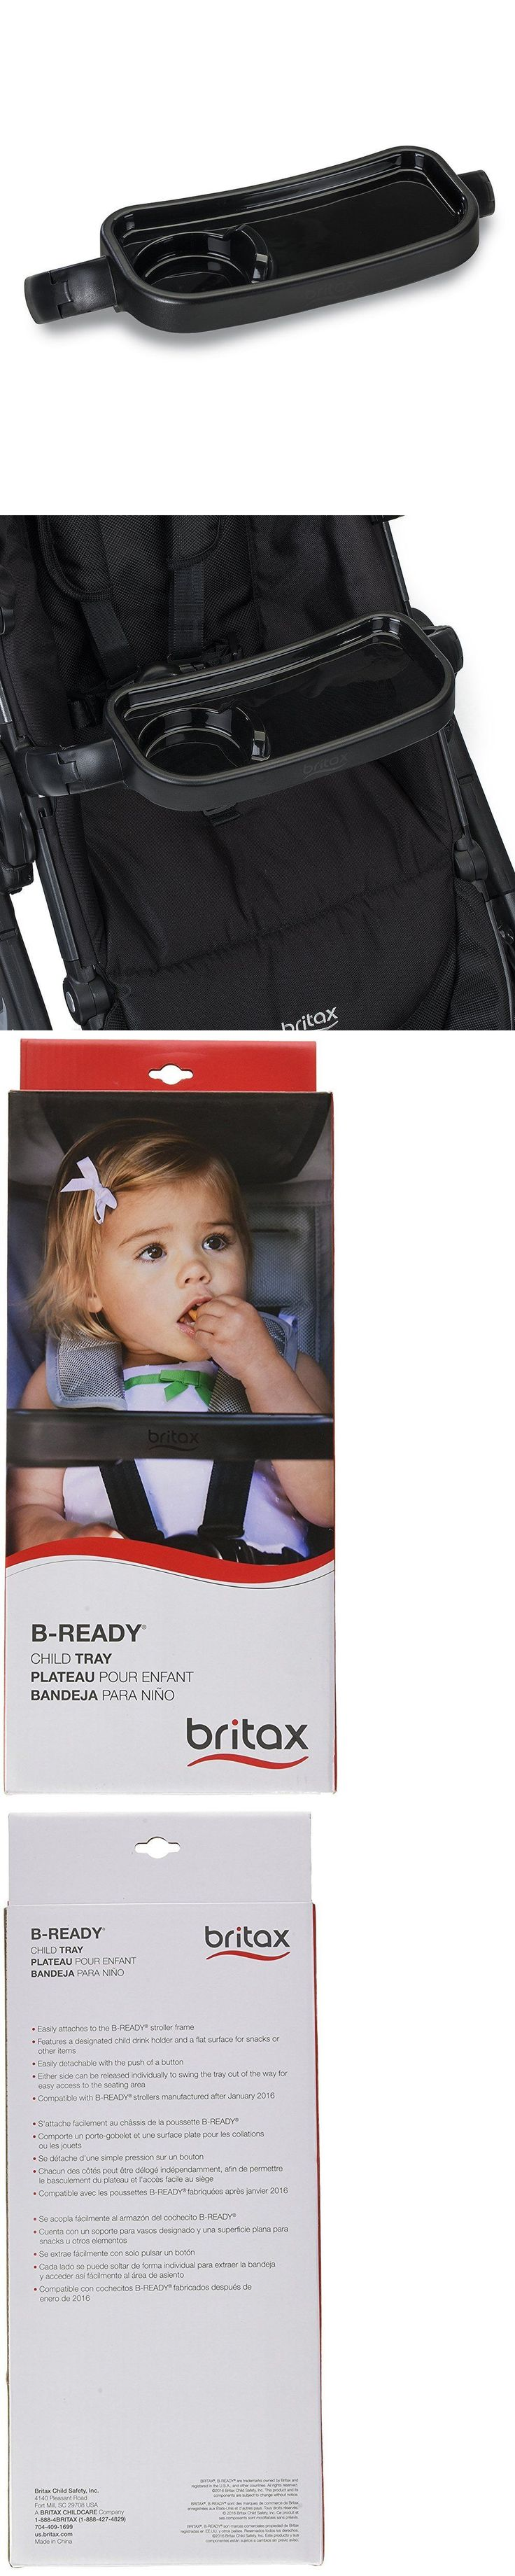 Cup Holders and Snack Trays 180913: Britax 2017 B-Ready Child Tray So3634300 2017 Usa Mytoddler Seat Saver New -> BUY IT NOW ONLY: $34.95 on eBay!